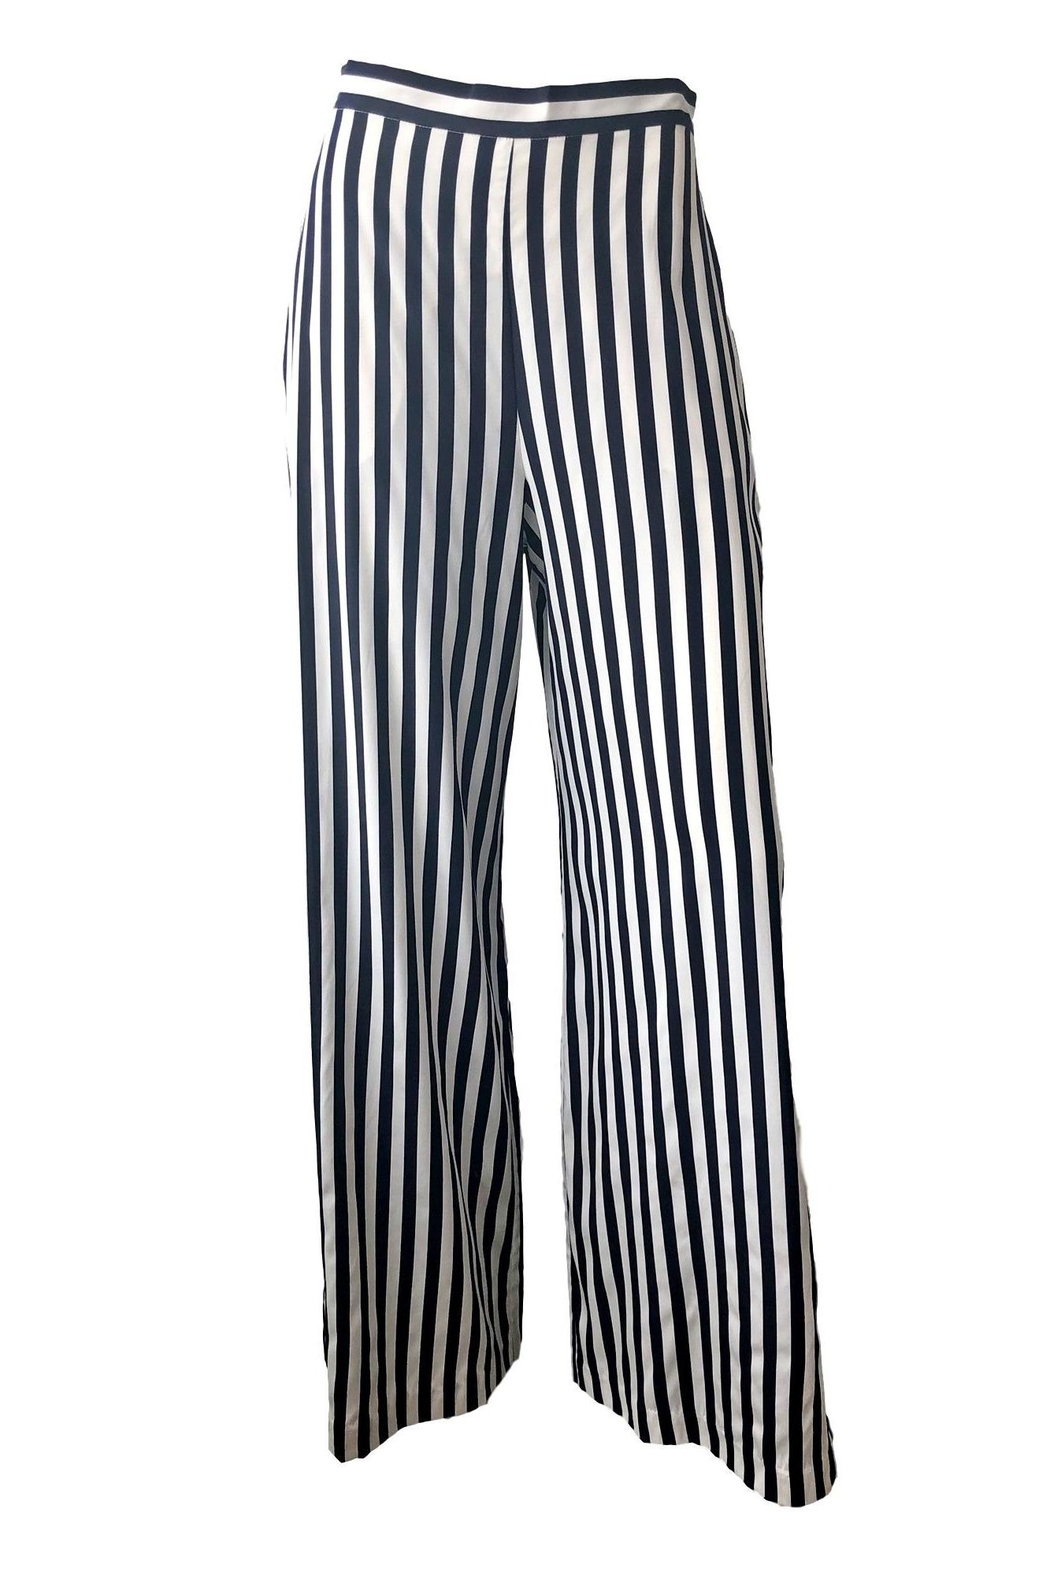 Zimmermann Moncur Striped Pant - Front Cropped Image